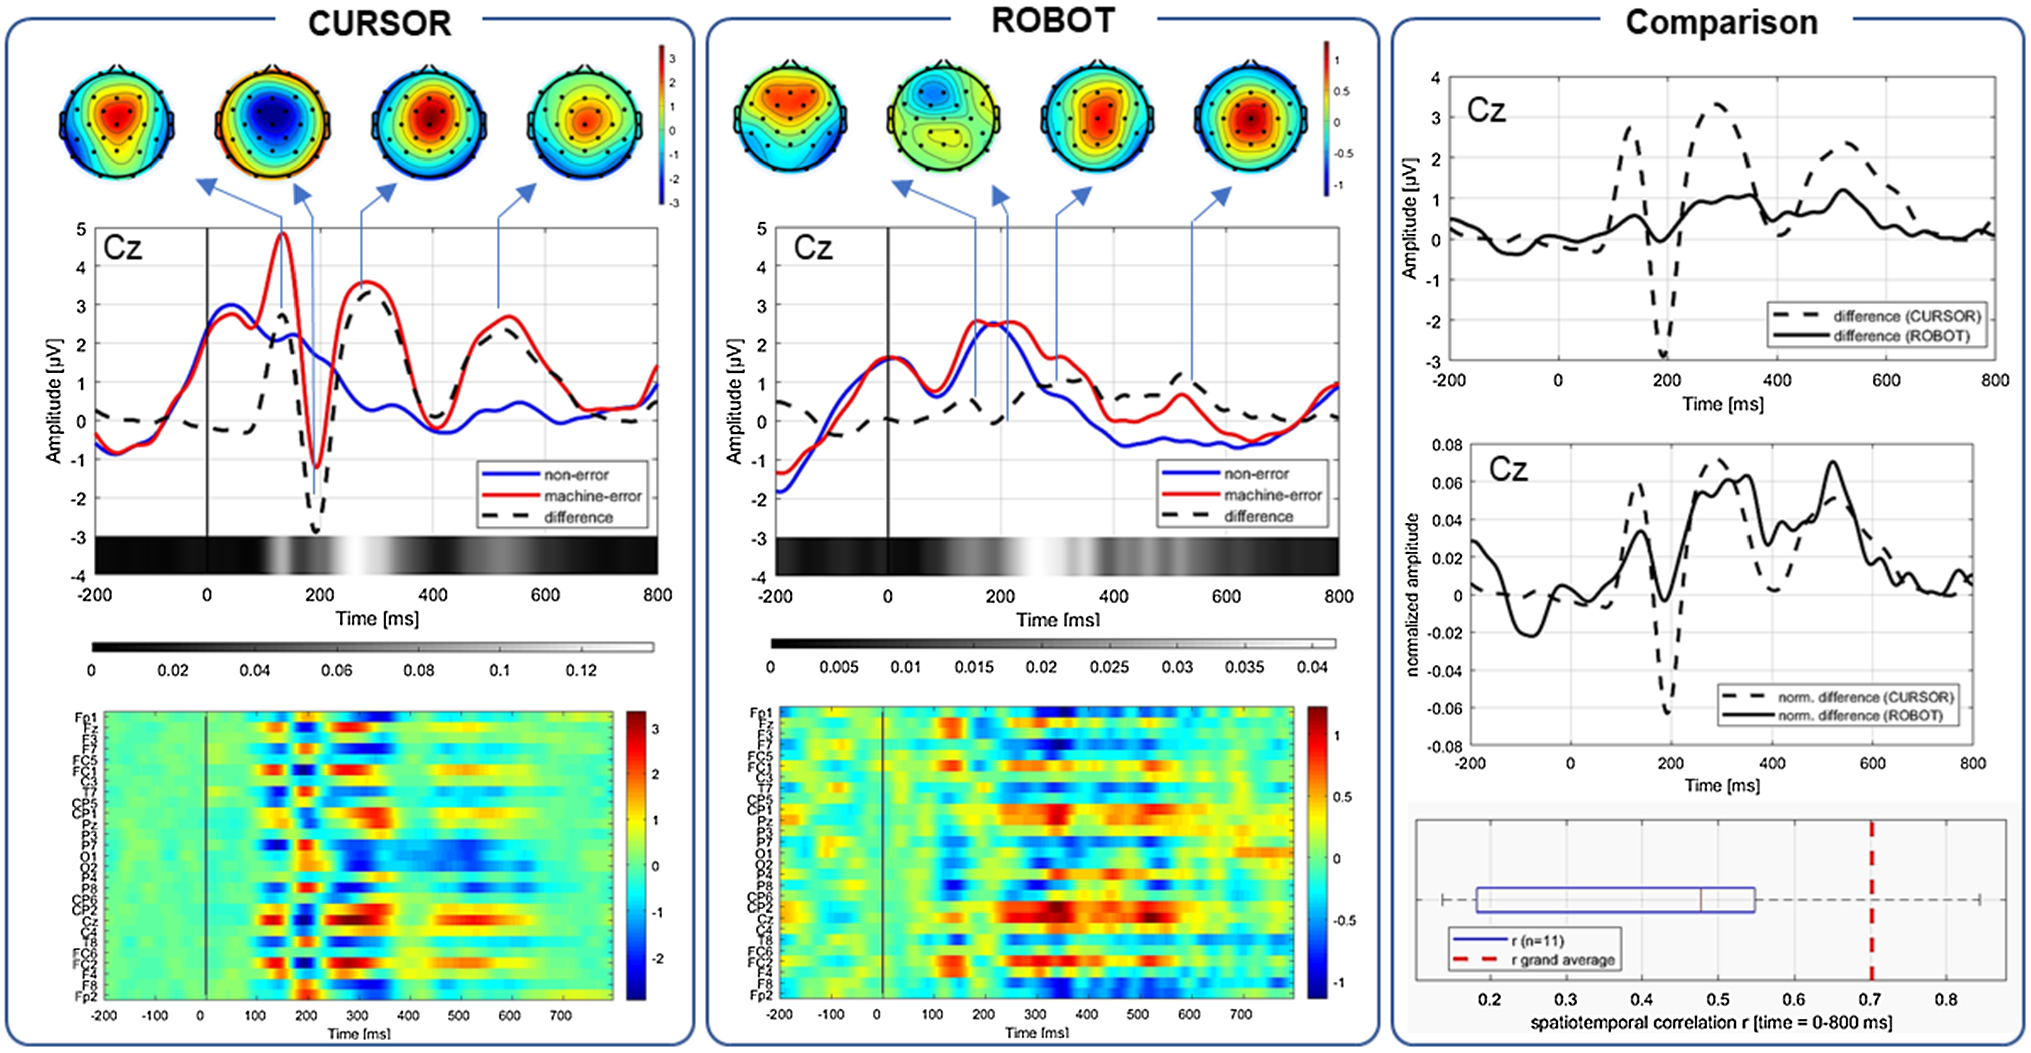 A Feasibility Study for Validating Robot Actions Using EEG-Based